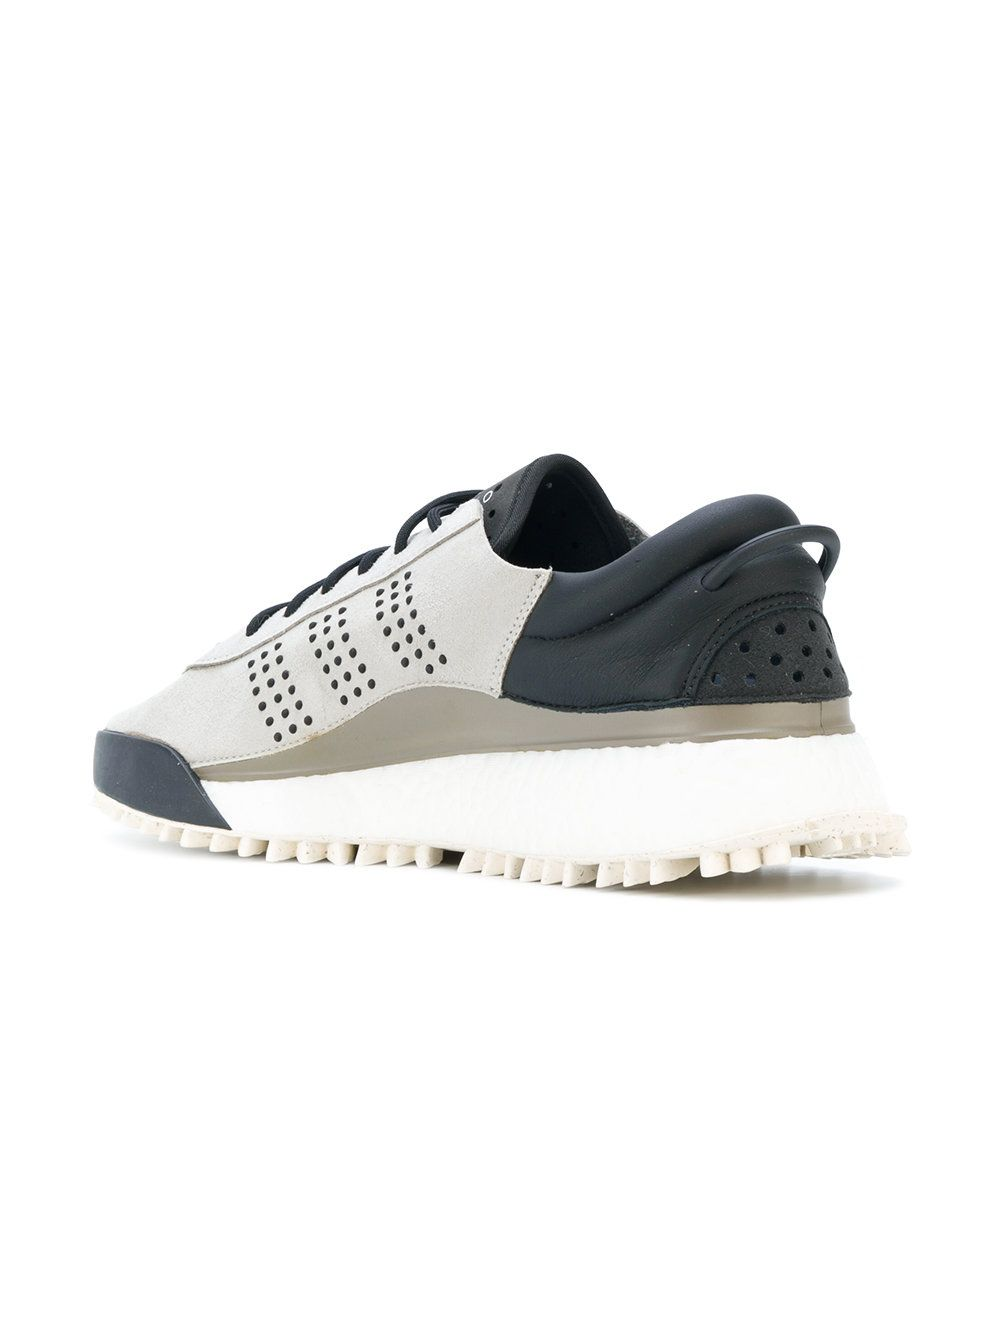 half off 4eca8 70378 Adidas Originals By Alexander Wang AW Hike Lo sneakers | STYL3Z ...